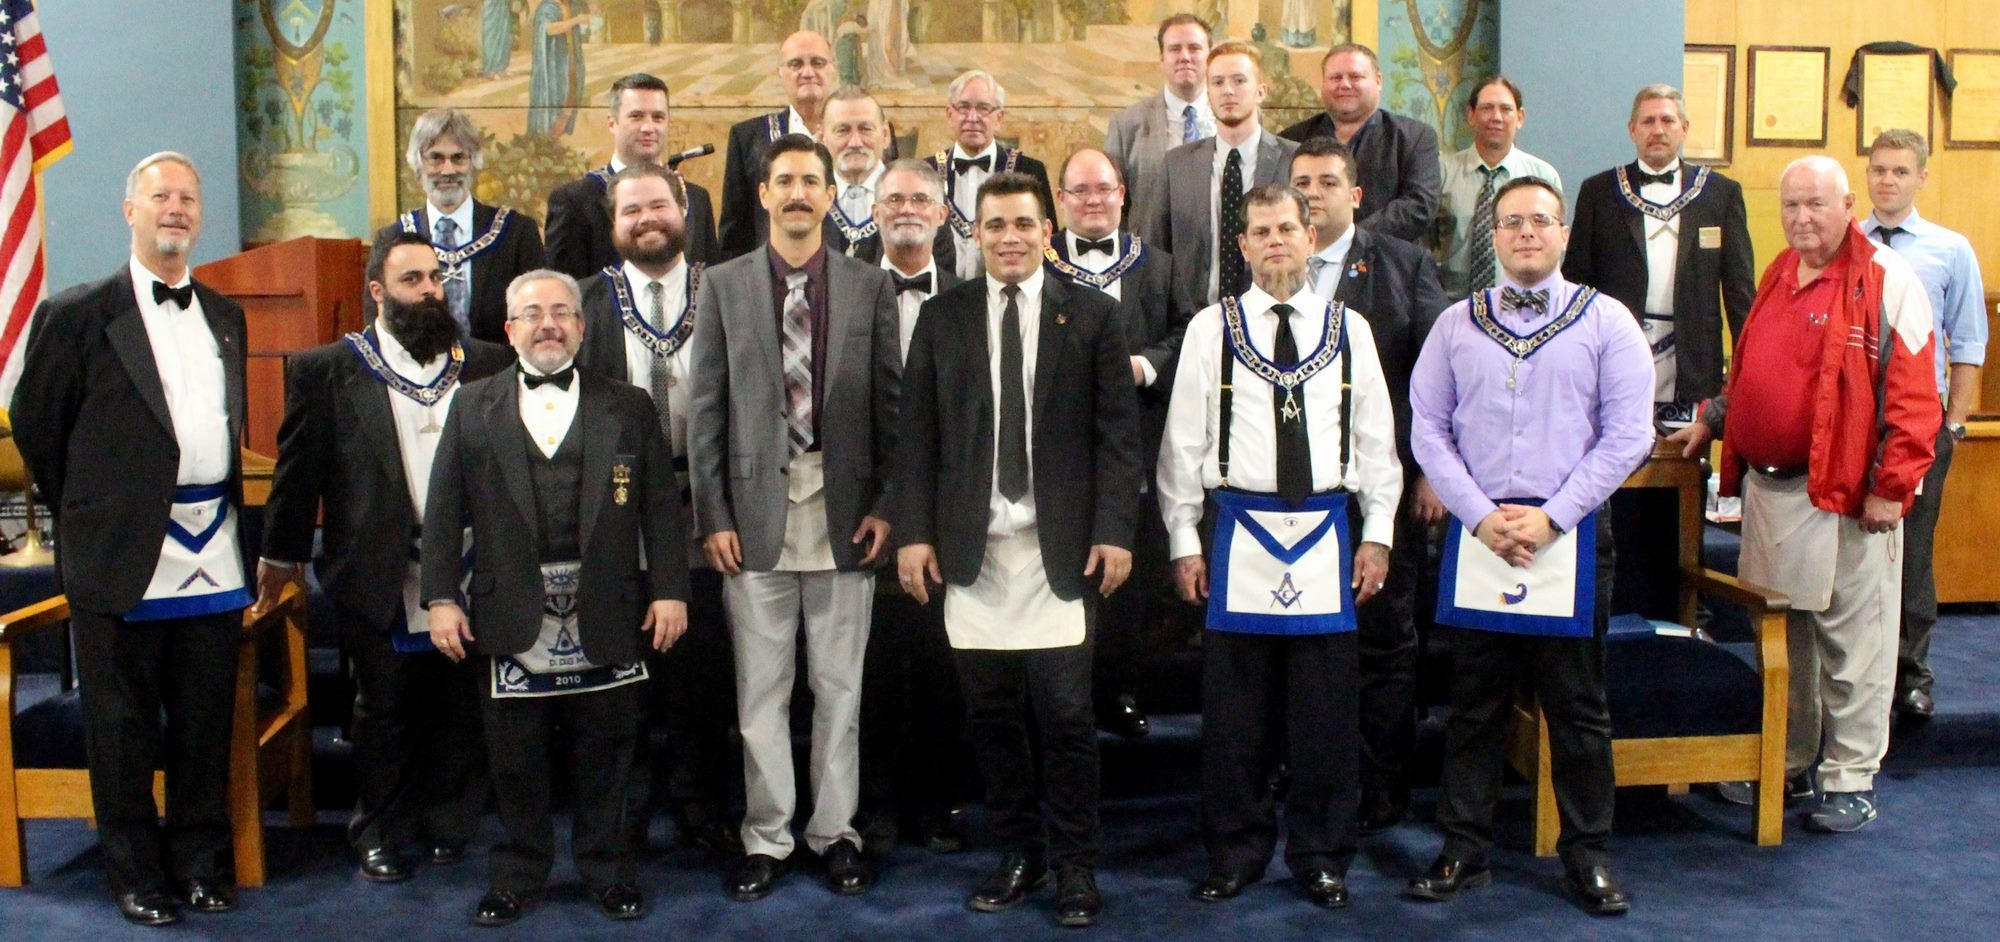 Master-Mason-Degree-December-8th-2015-David-James-Stephen-Cerda-6